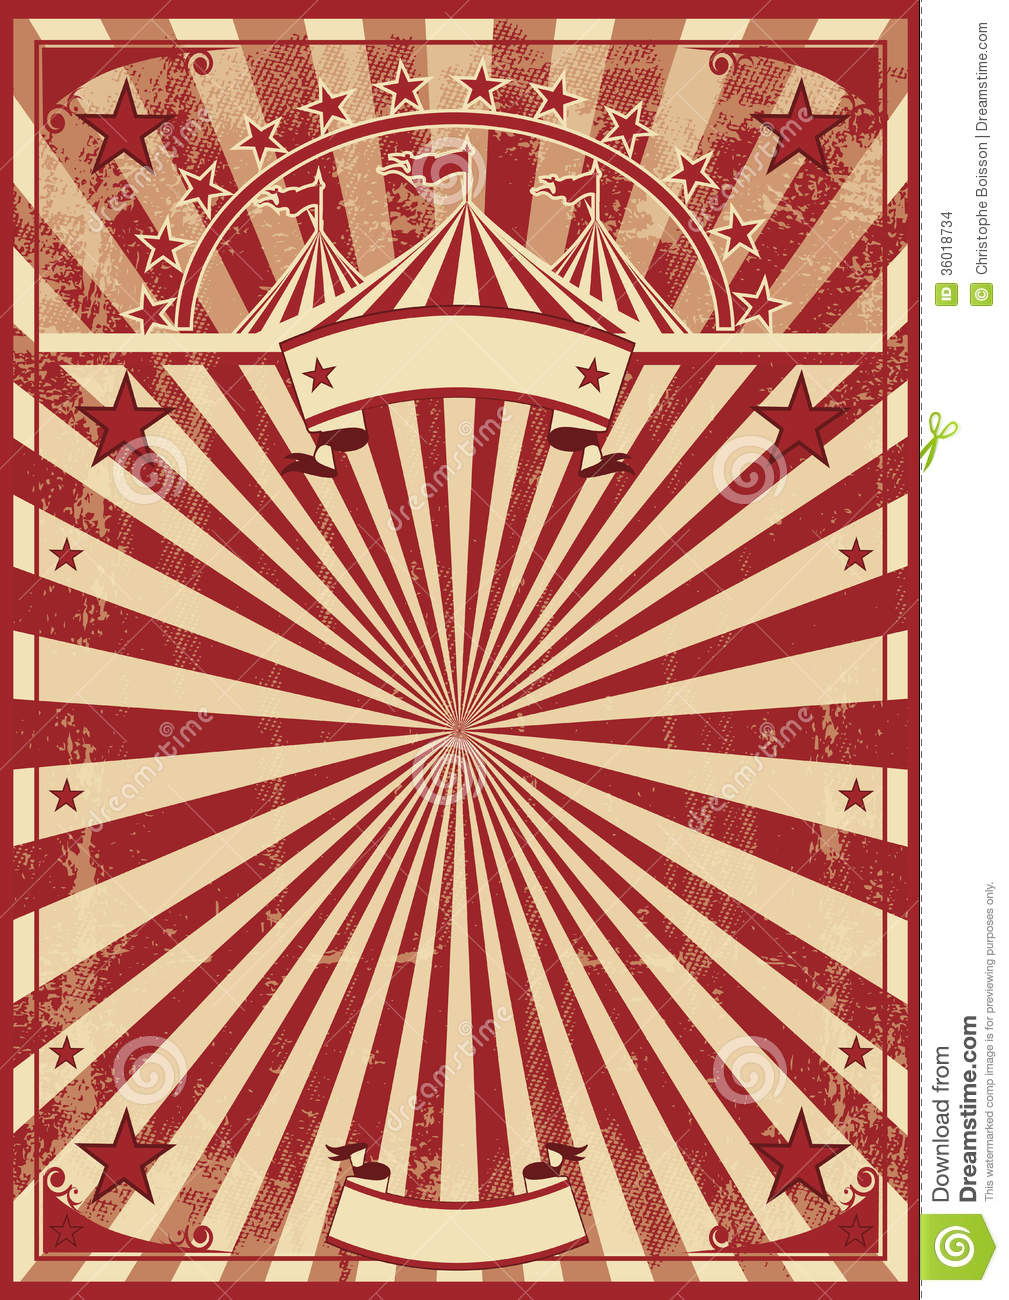 Vintage Circus Poster Background A vintage circus poster for